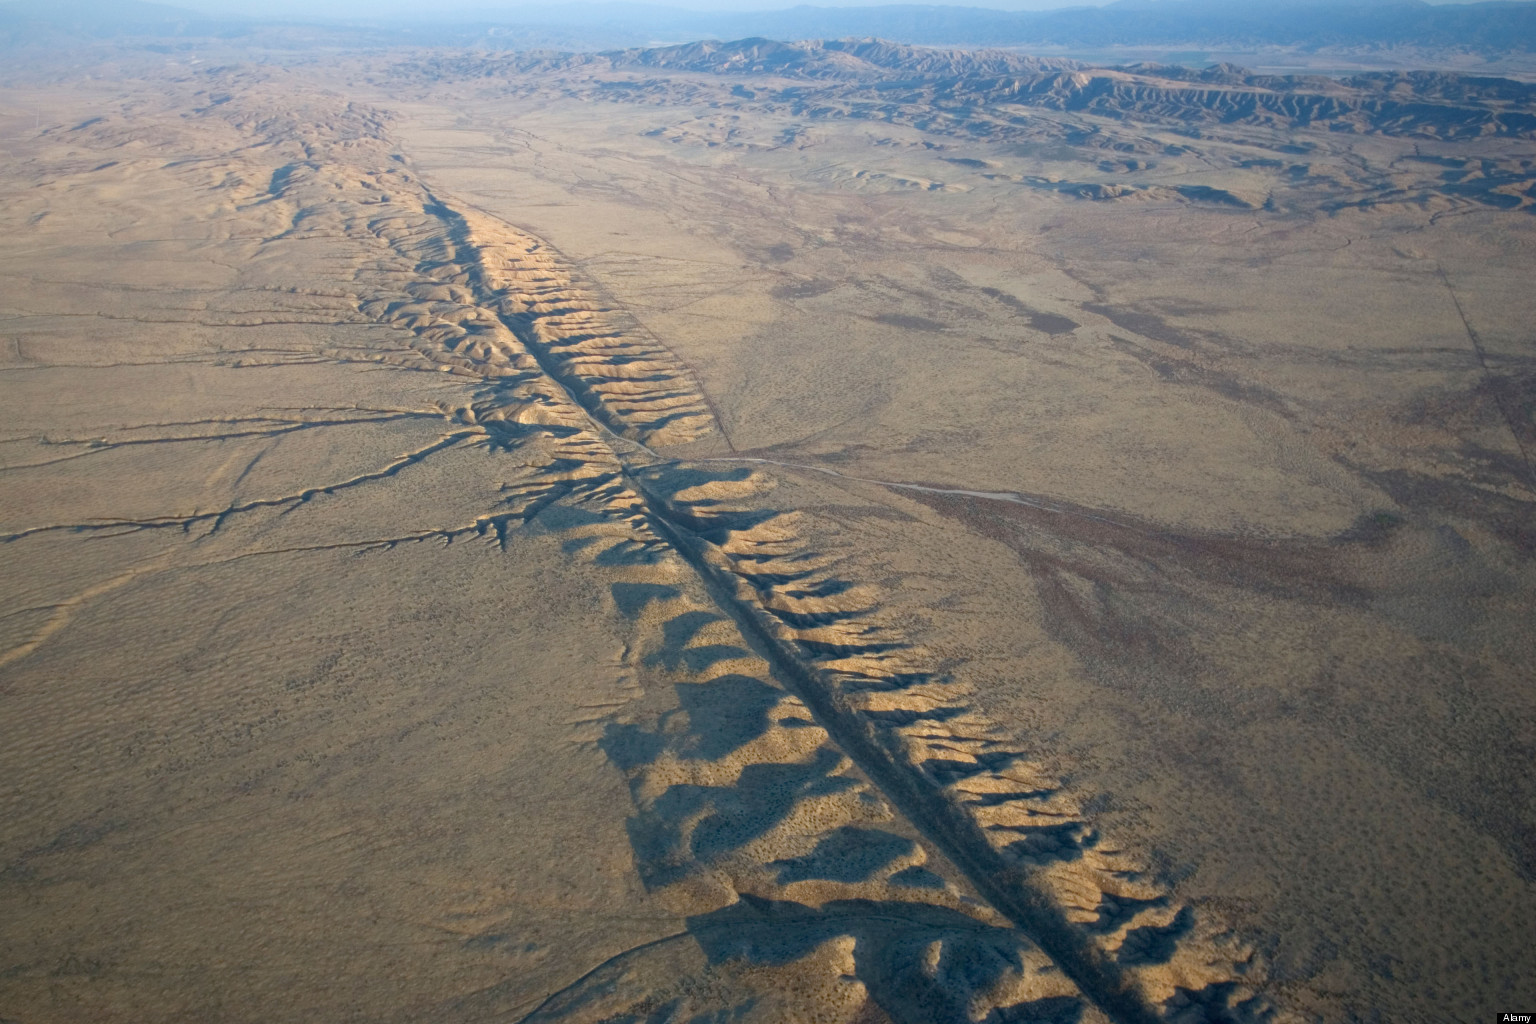 San Andreas Fault Map With Cities San andreas fault,one of